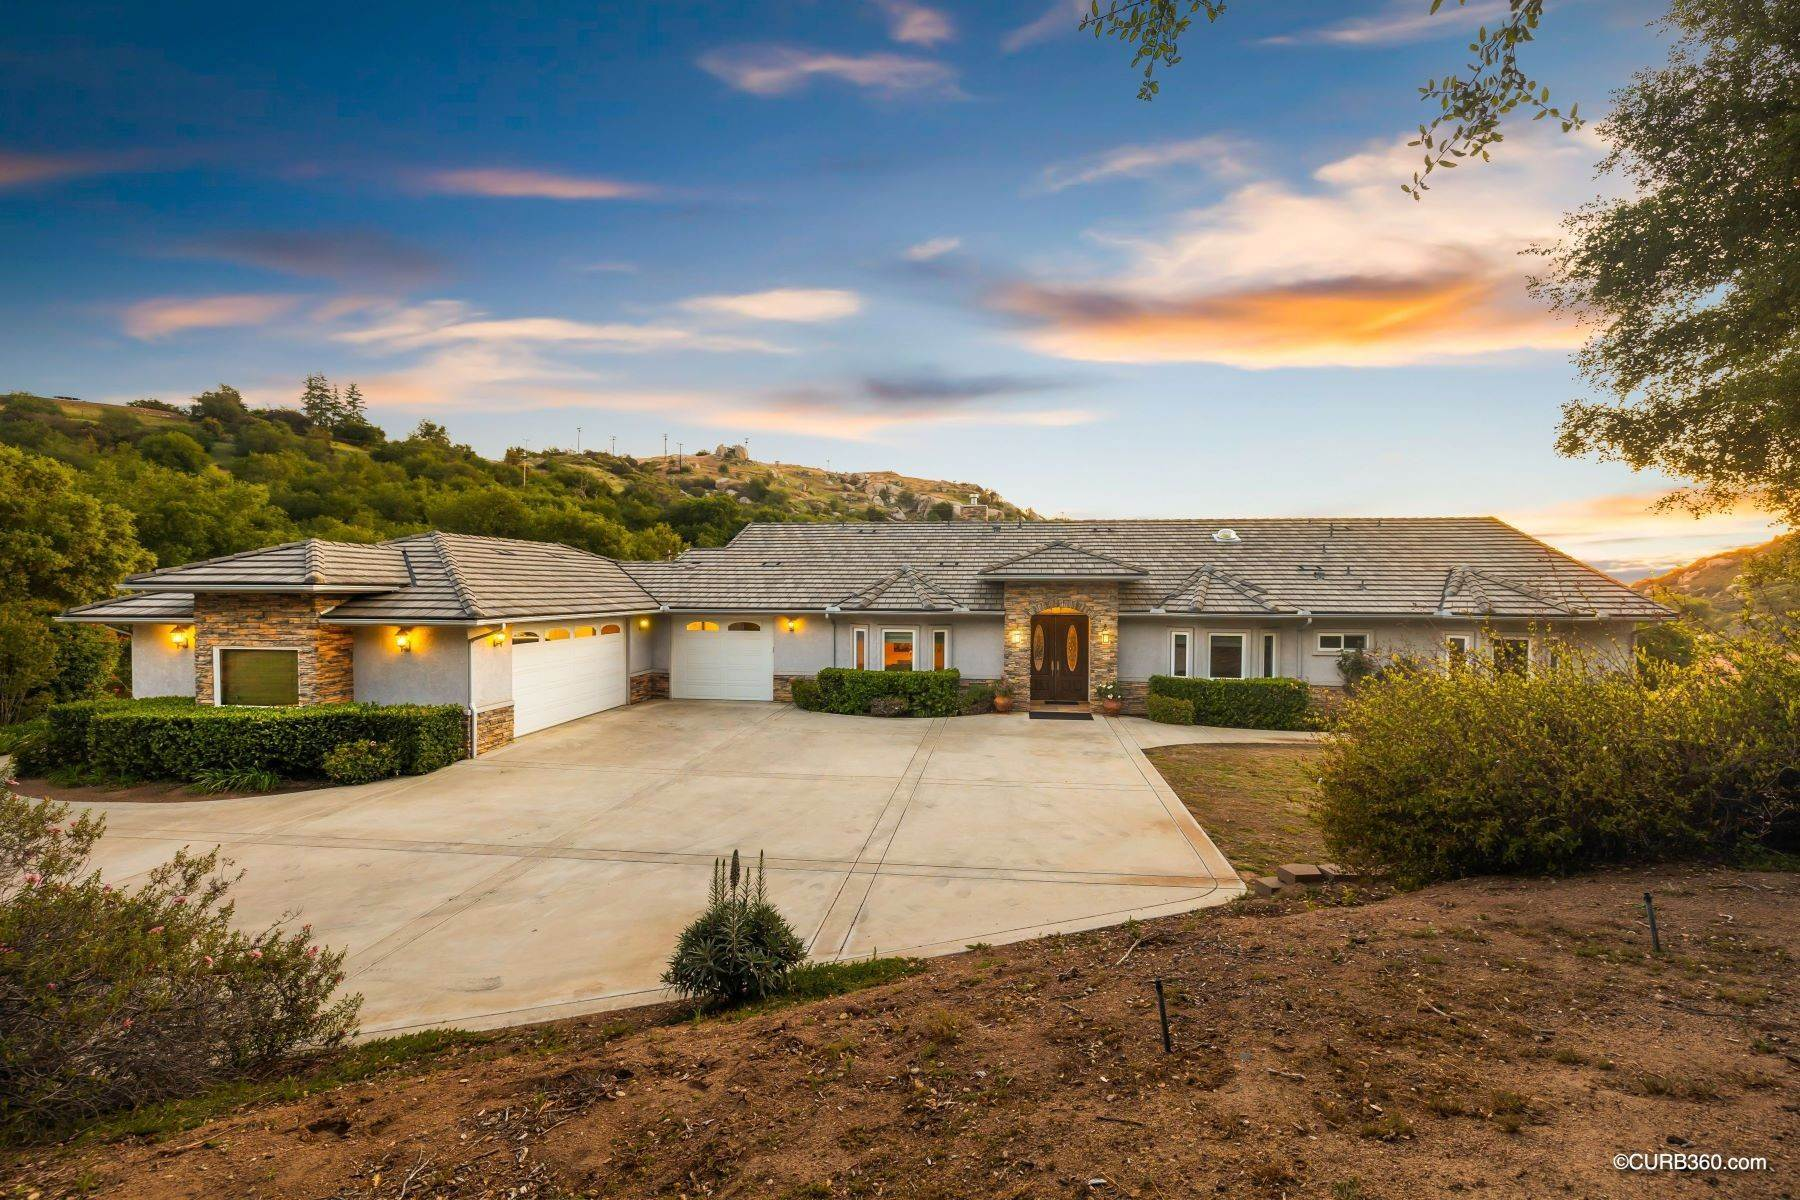 Single Family Homes for Sale at Custom Built Home on 5.84 Acres on the West End of Ramona's Wine Country! 16522 Green Valley Truck Trail Ramona, California 92065 United States